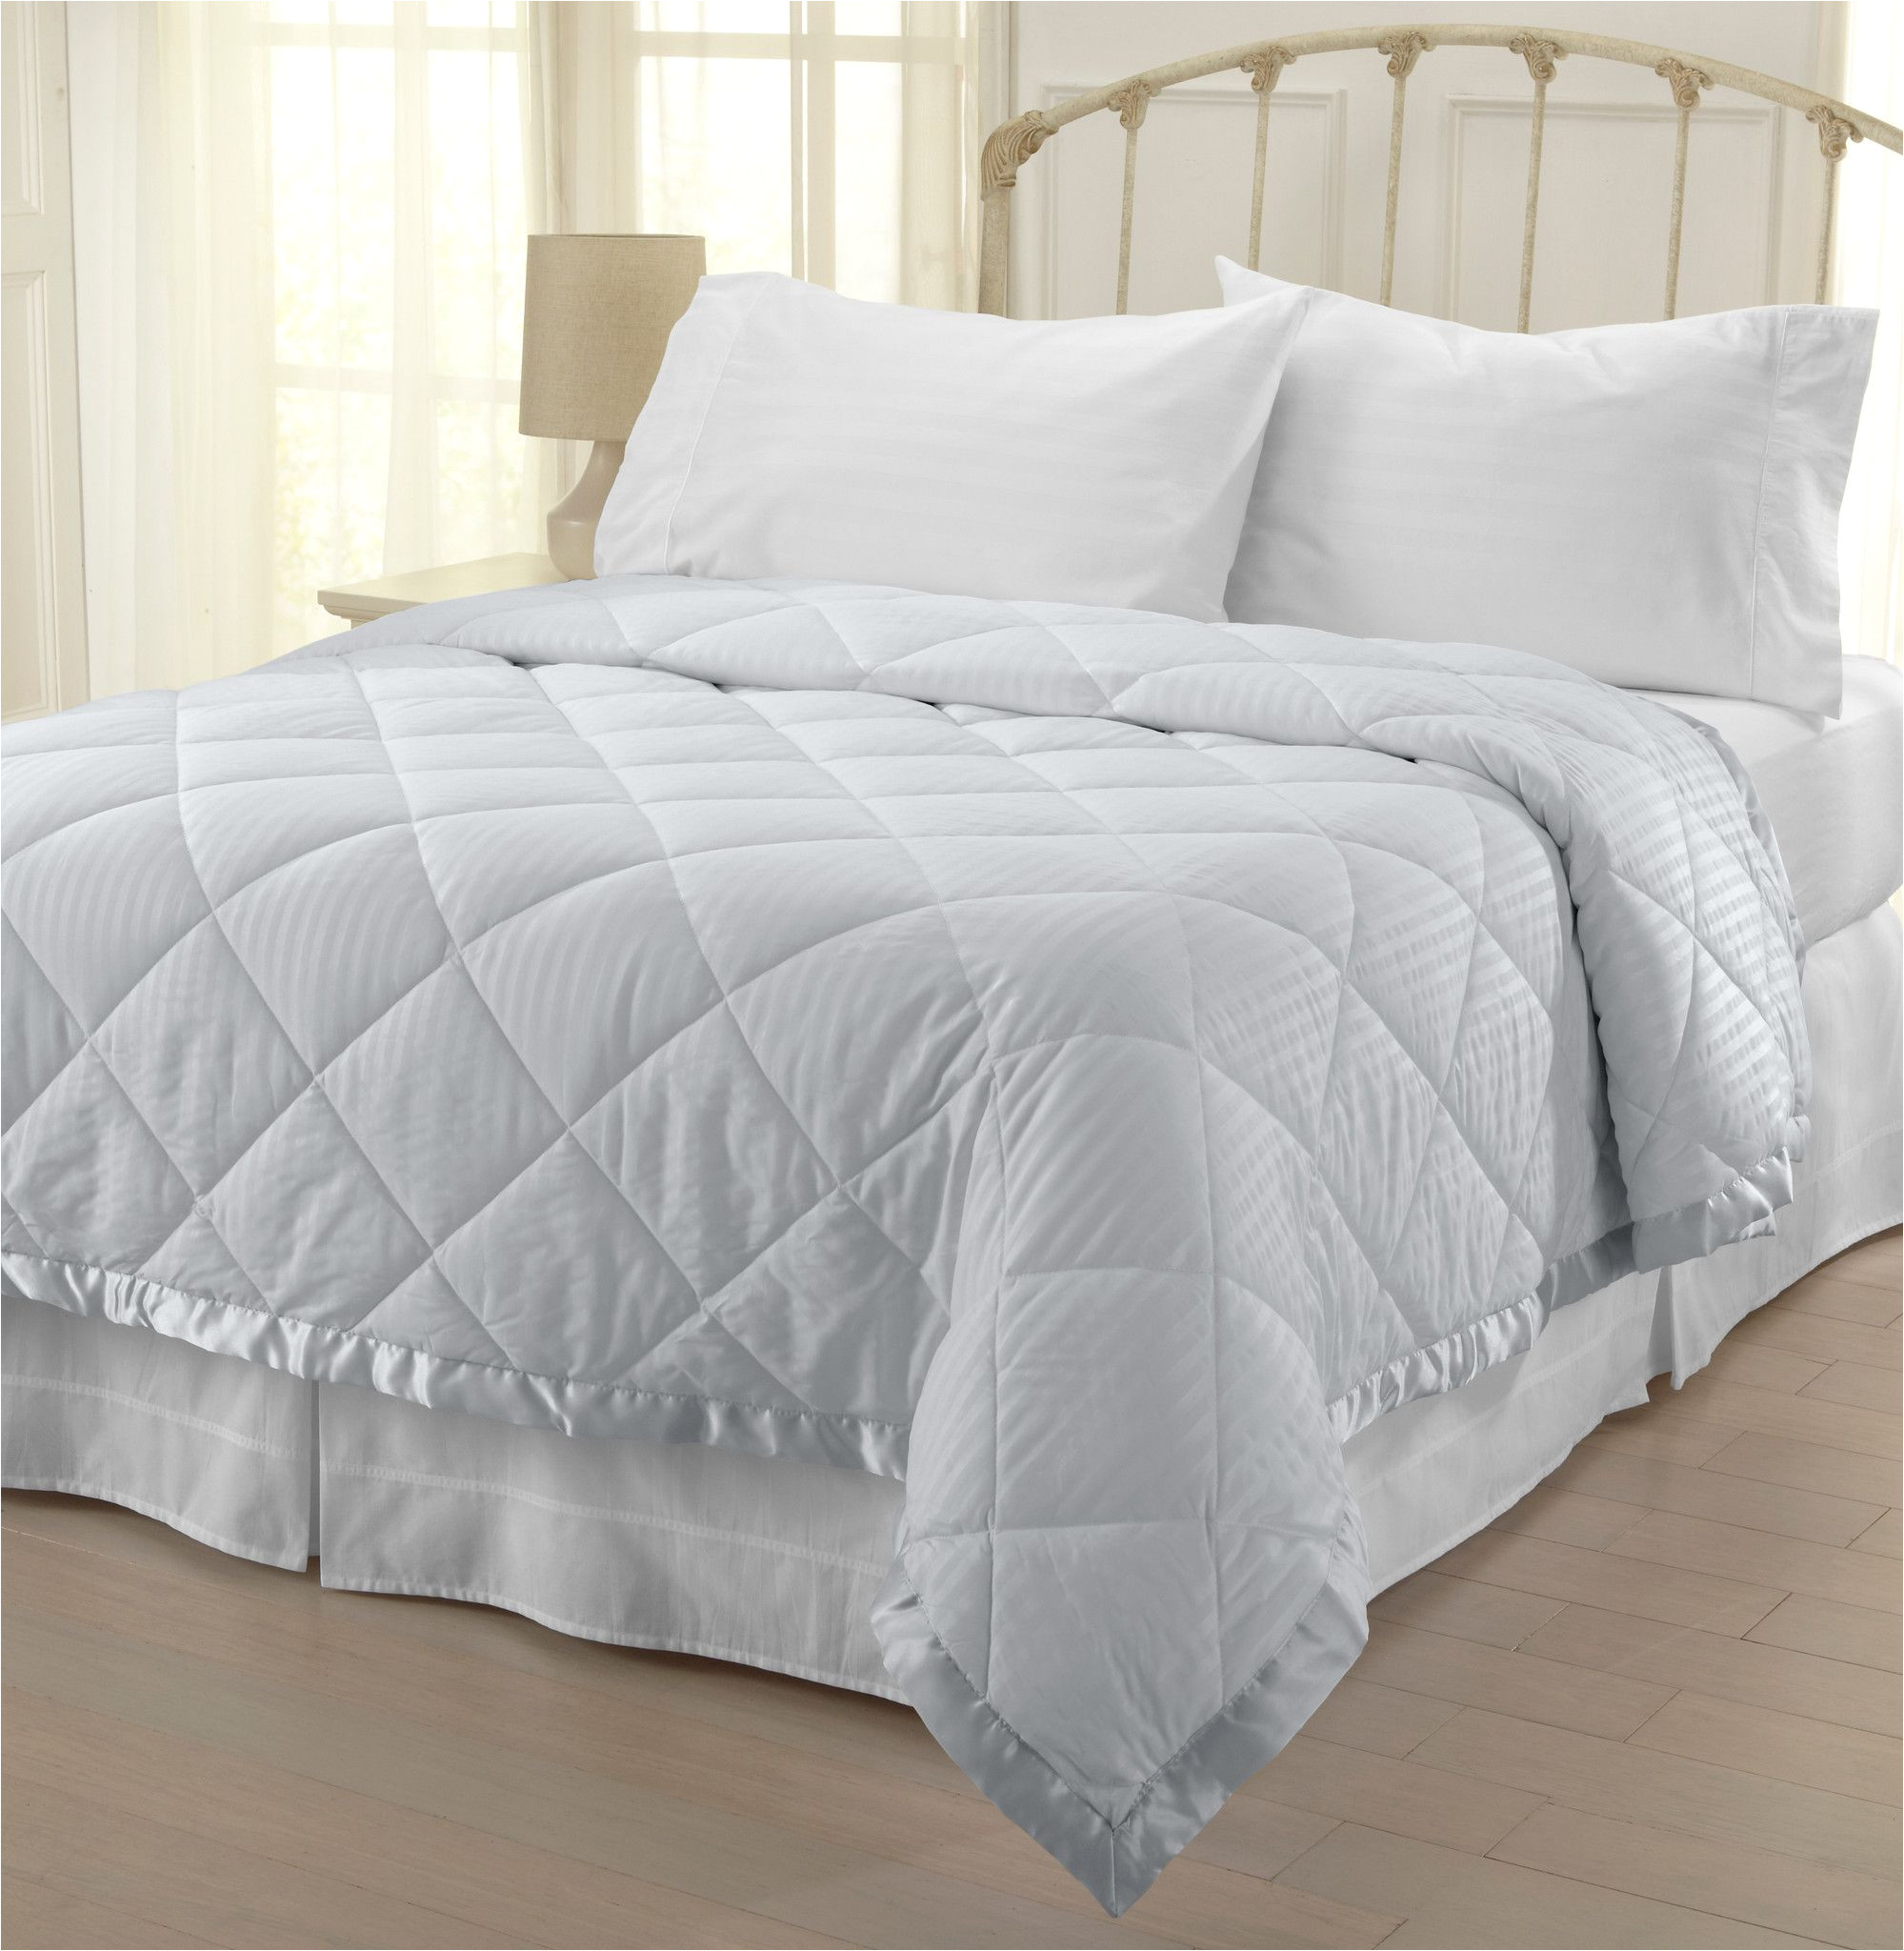 Difference Between Down and Down Alternative Comforter We Understand People with Allergies are Often Uncomfortable that S